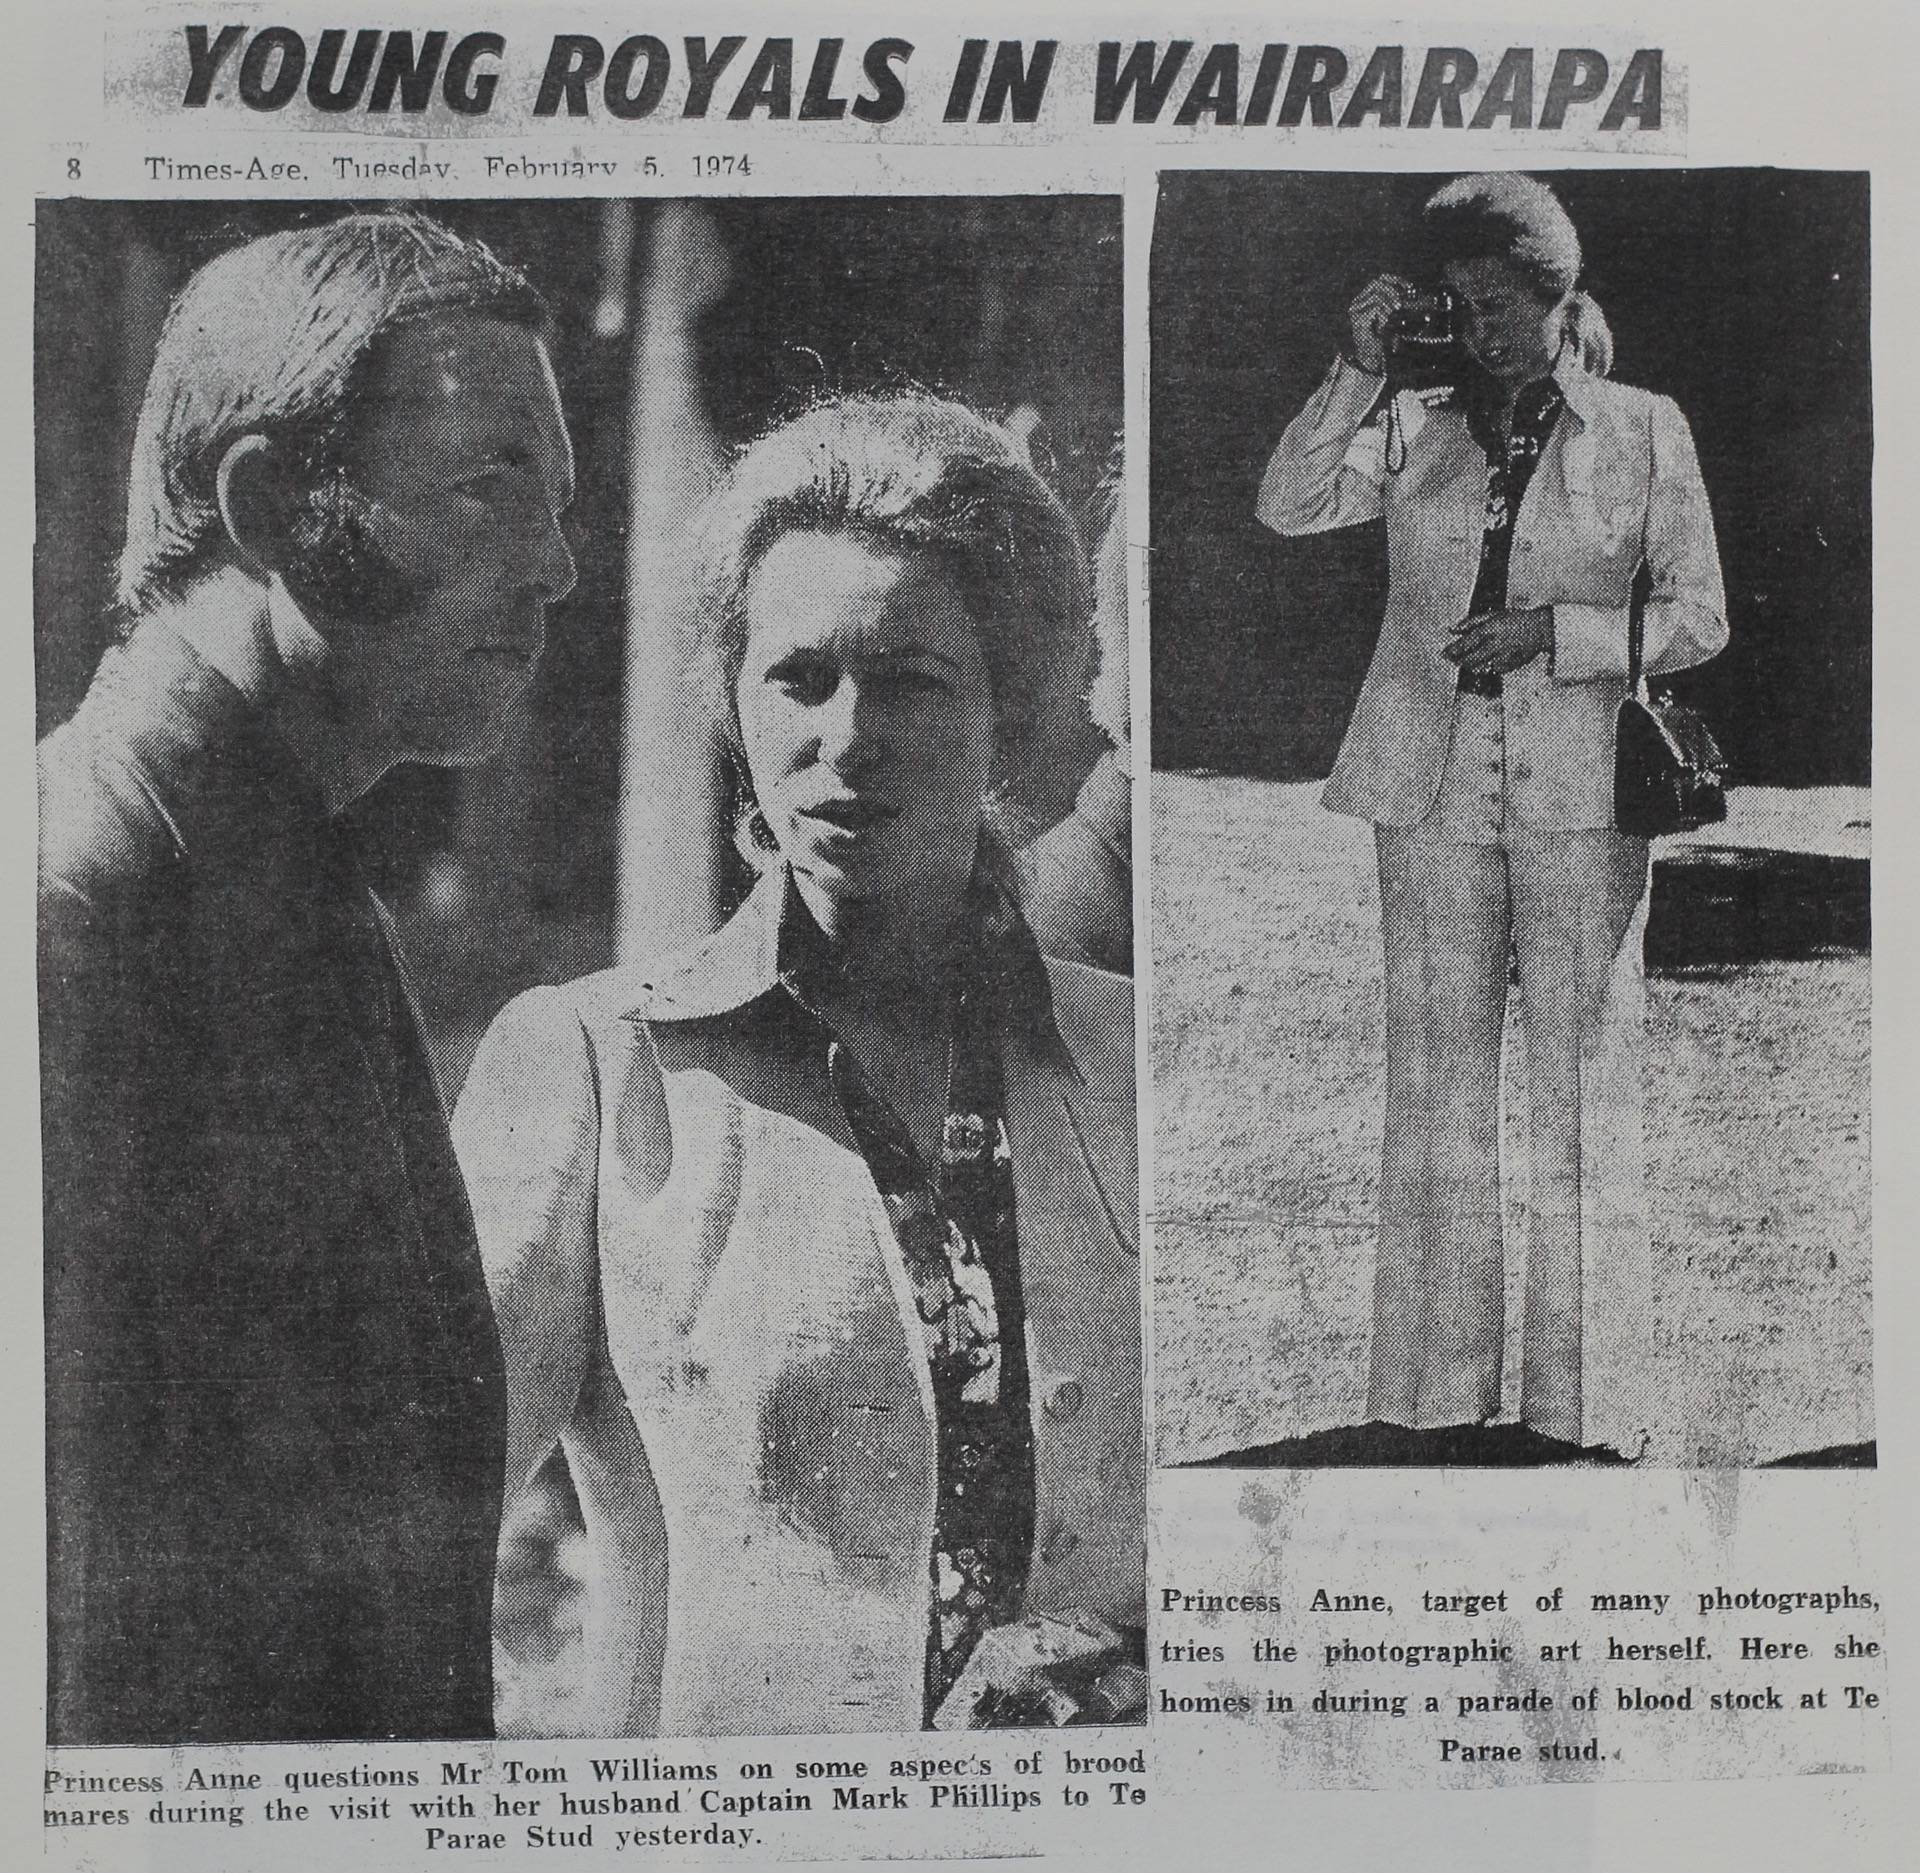 Young Royals in Wairarapa